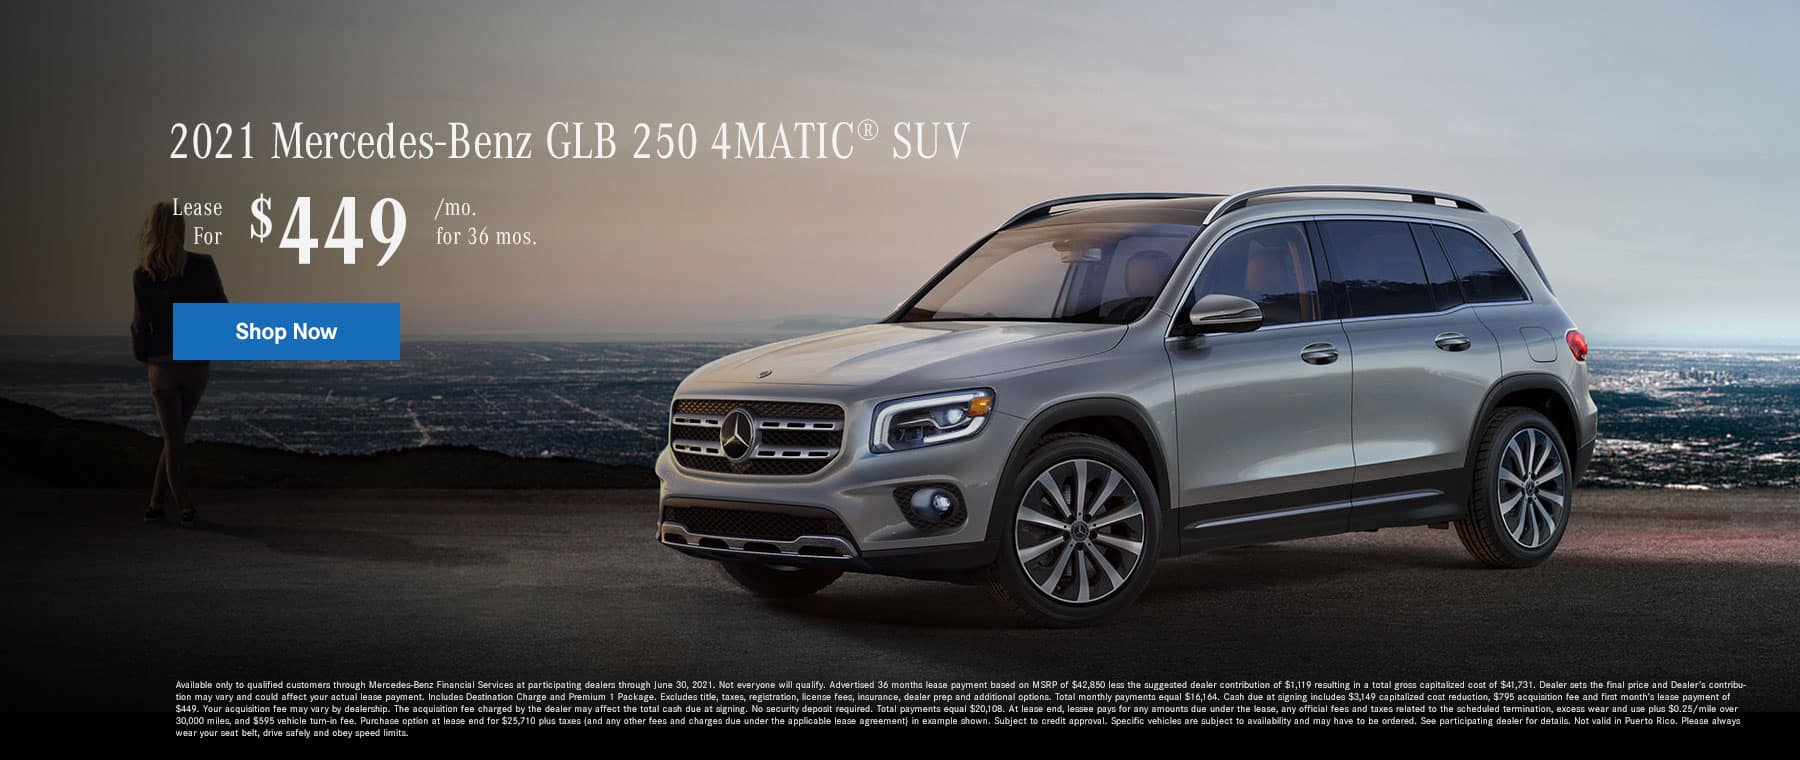 2021 Mercedes-Benz GLB 250 4MATIC® SUV. Lease for $449 Per Month for 36 Months